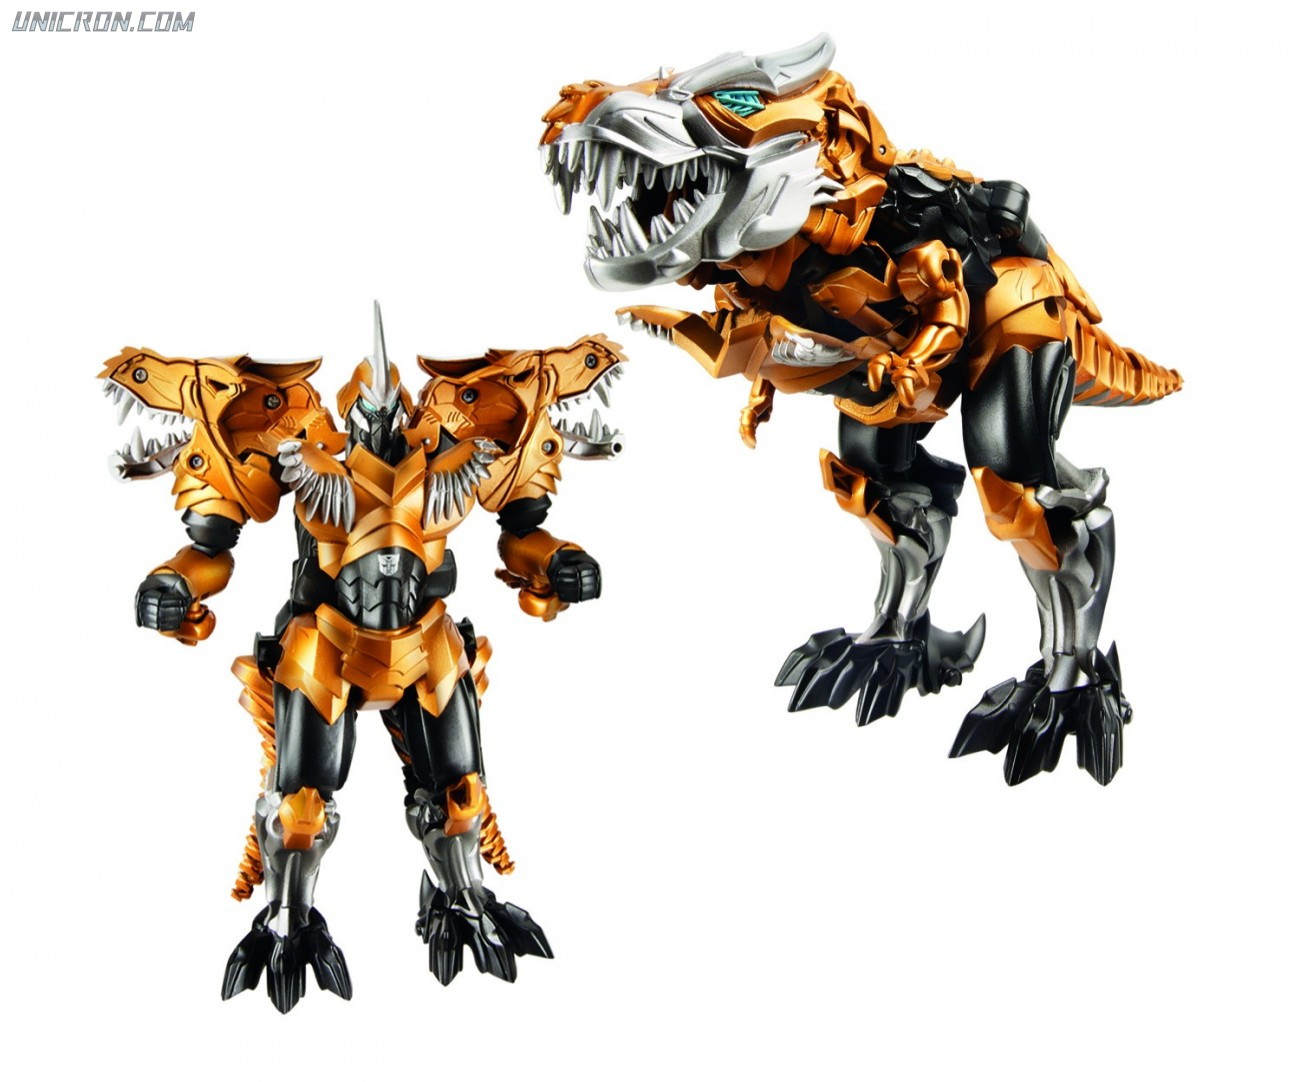 Transformers 4 Age of Extinction Grimlock - AoE Flip & Change toy